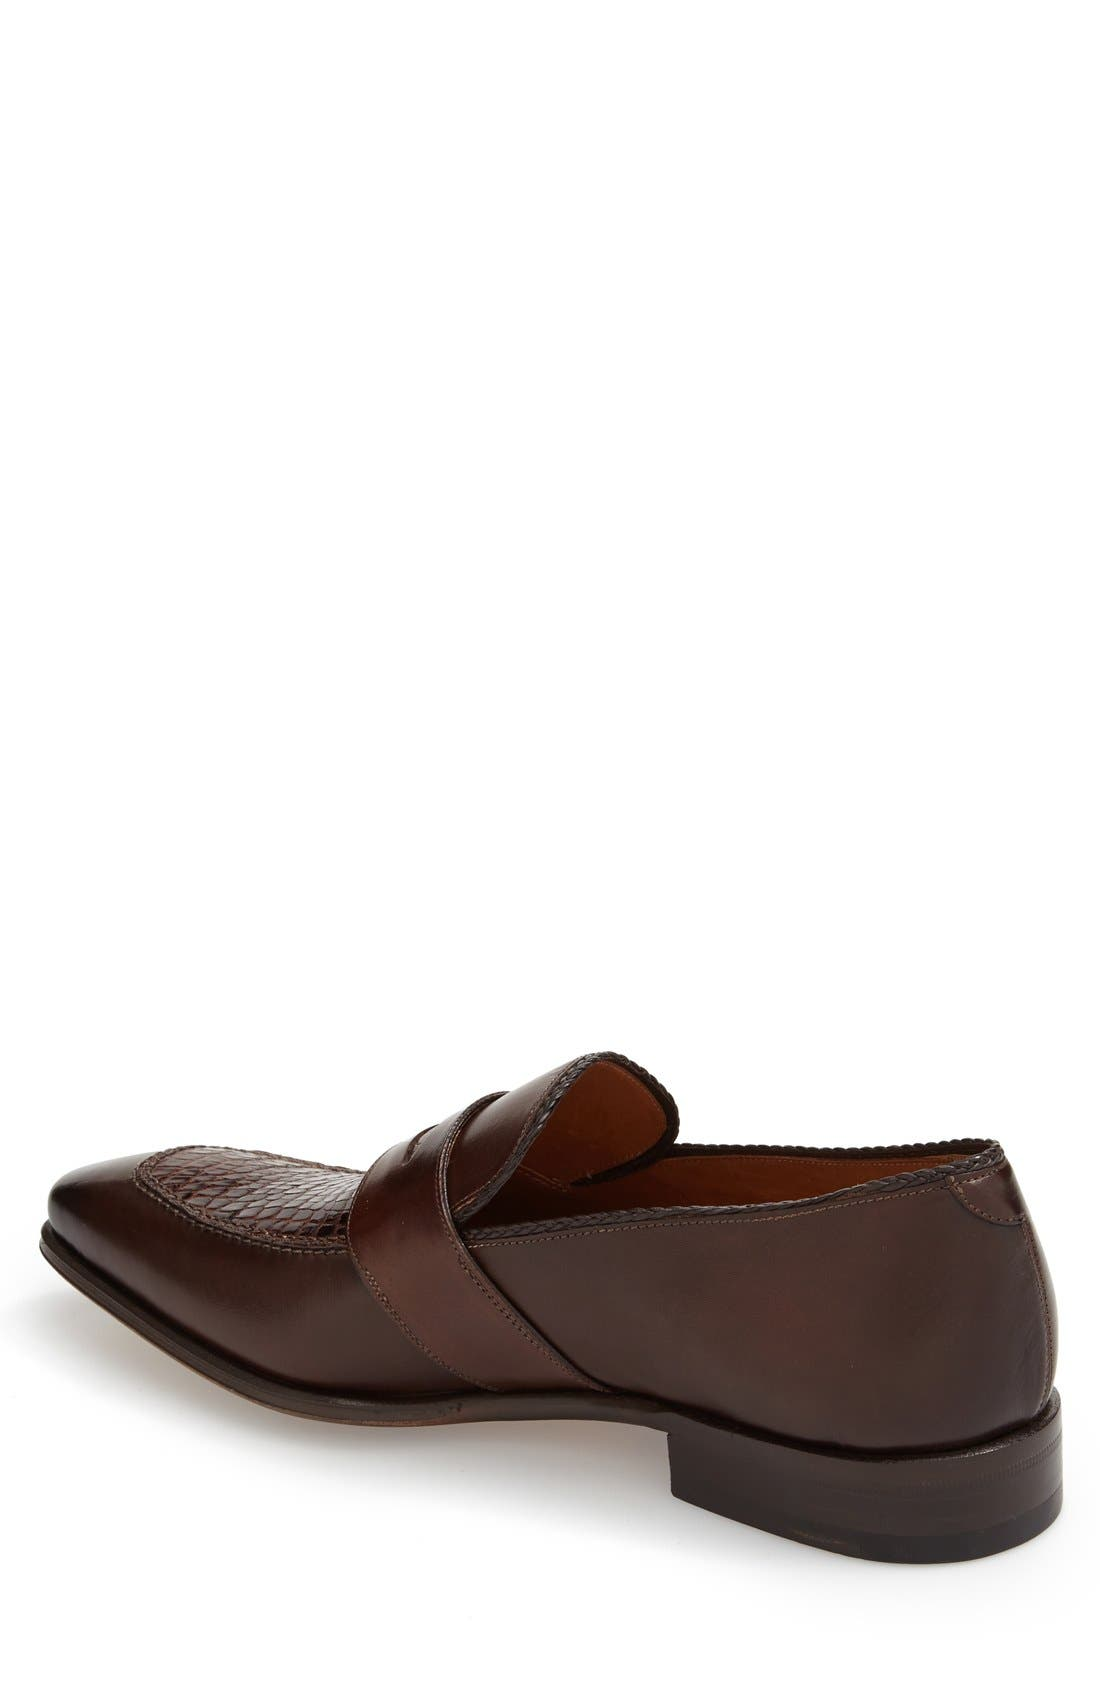 'Lambert' Penny Loafer,                             Alternate thumbnail 2, color,                             Brown Crocodile Leather